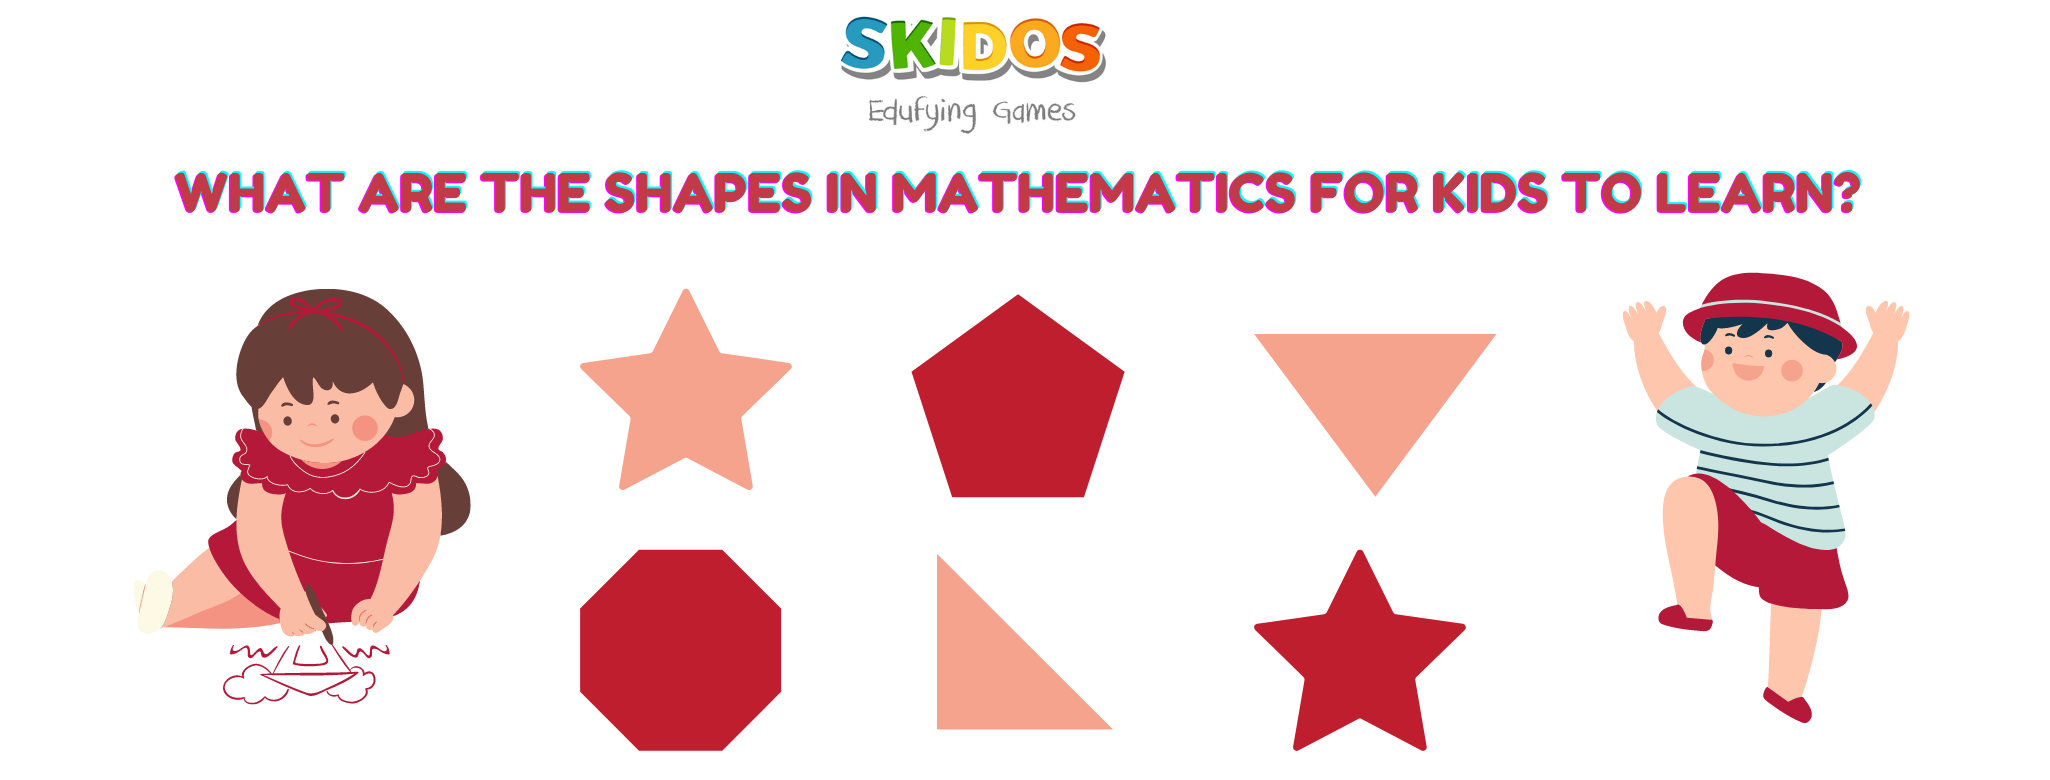 Geometric shapes for Kids with Definition, Cute Illustrations!